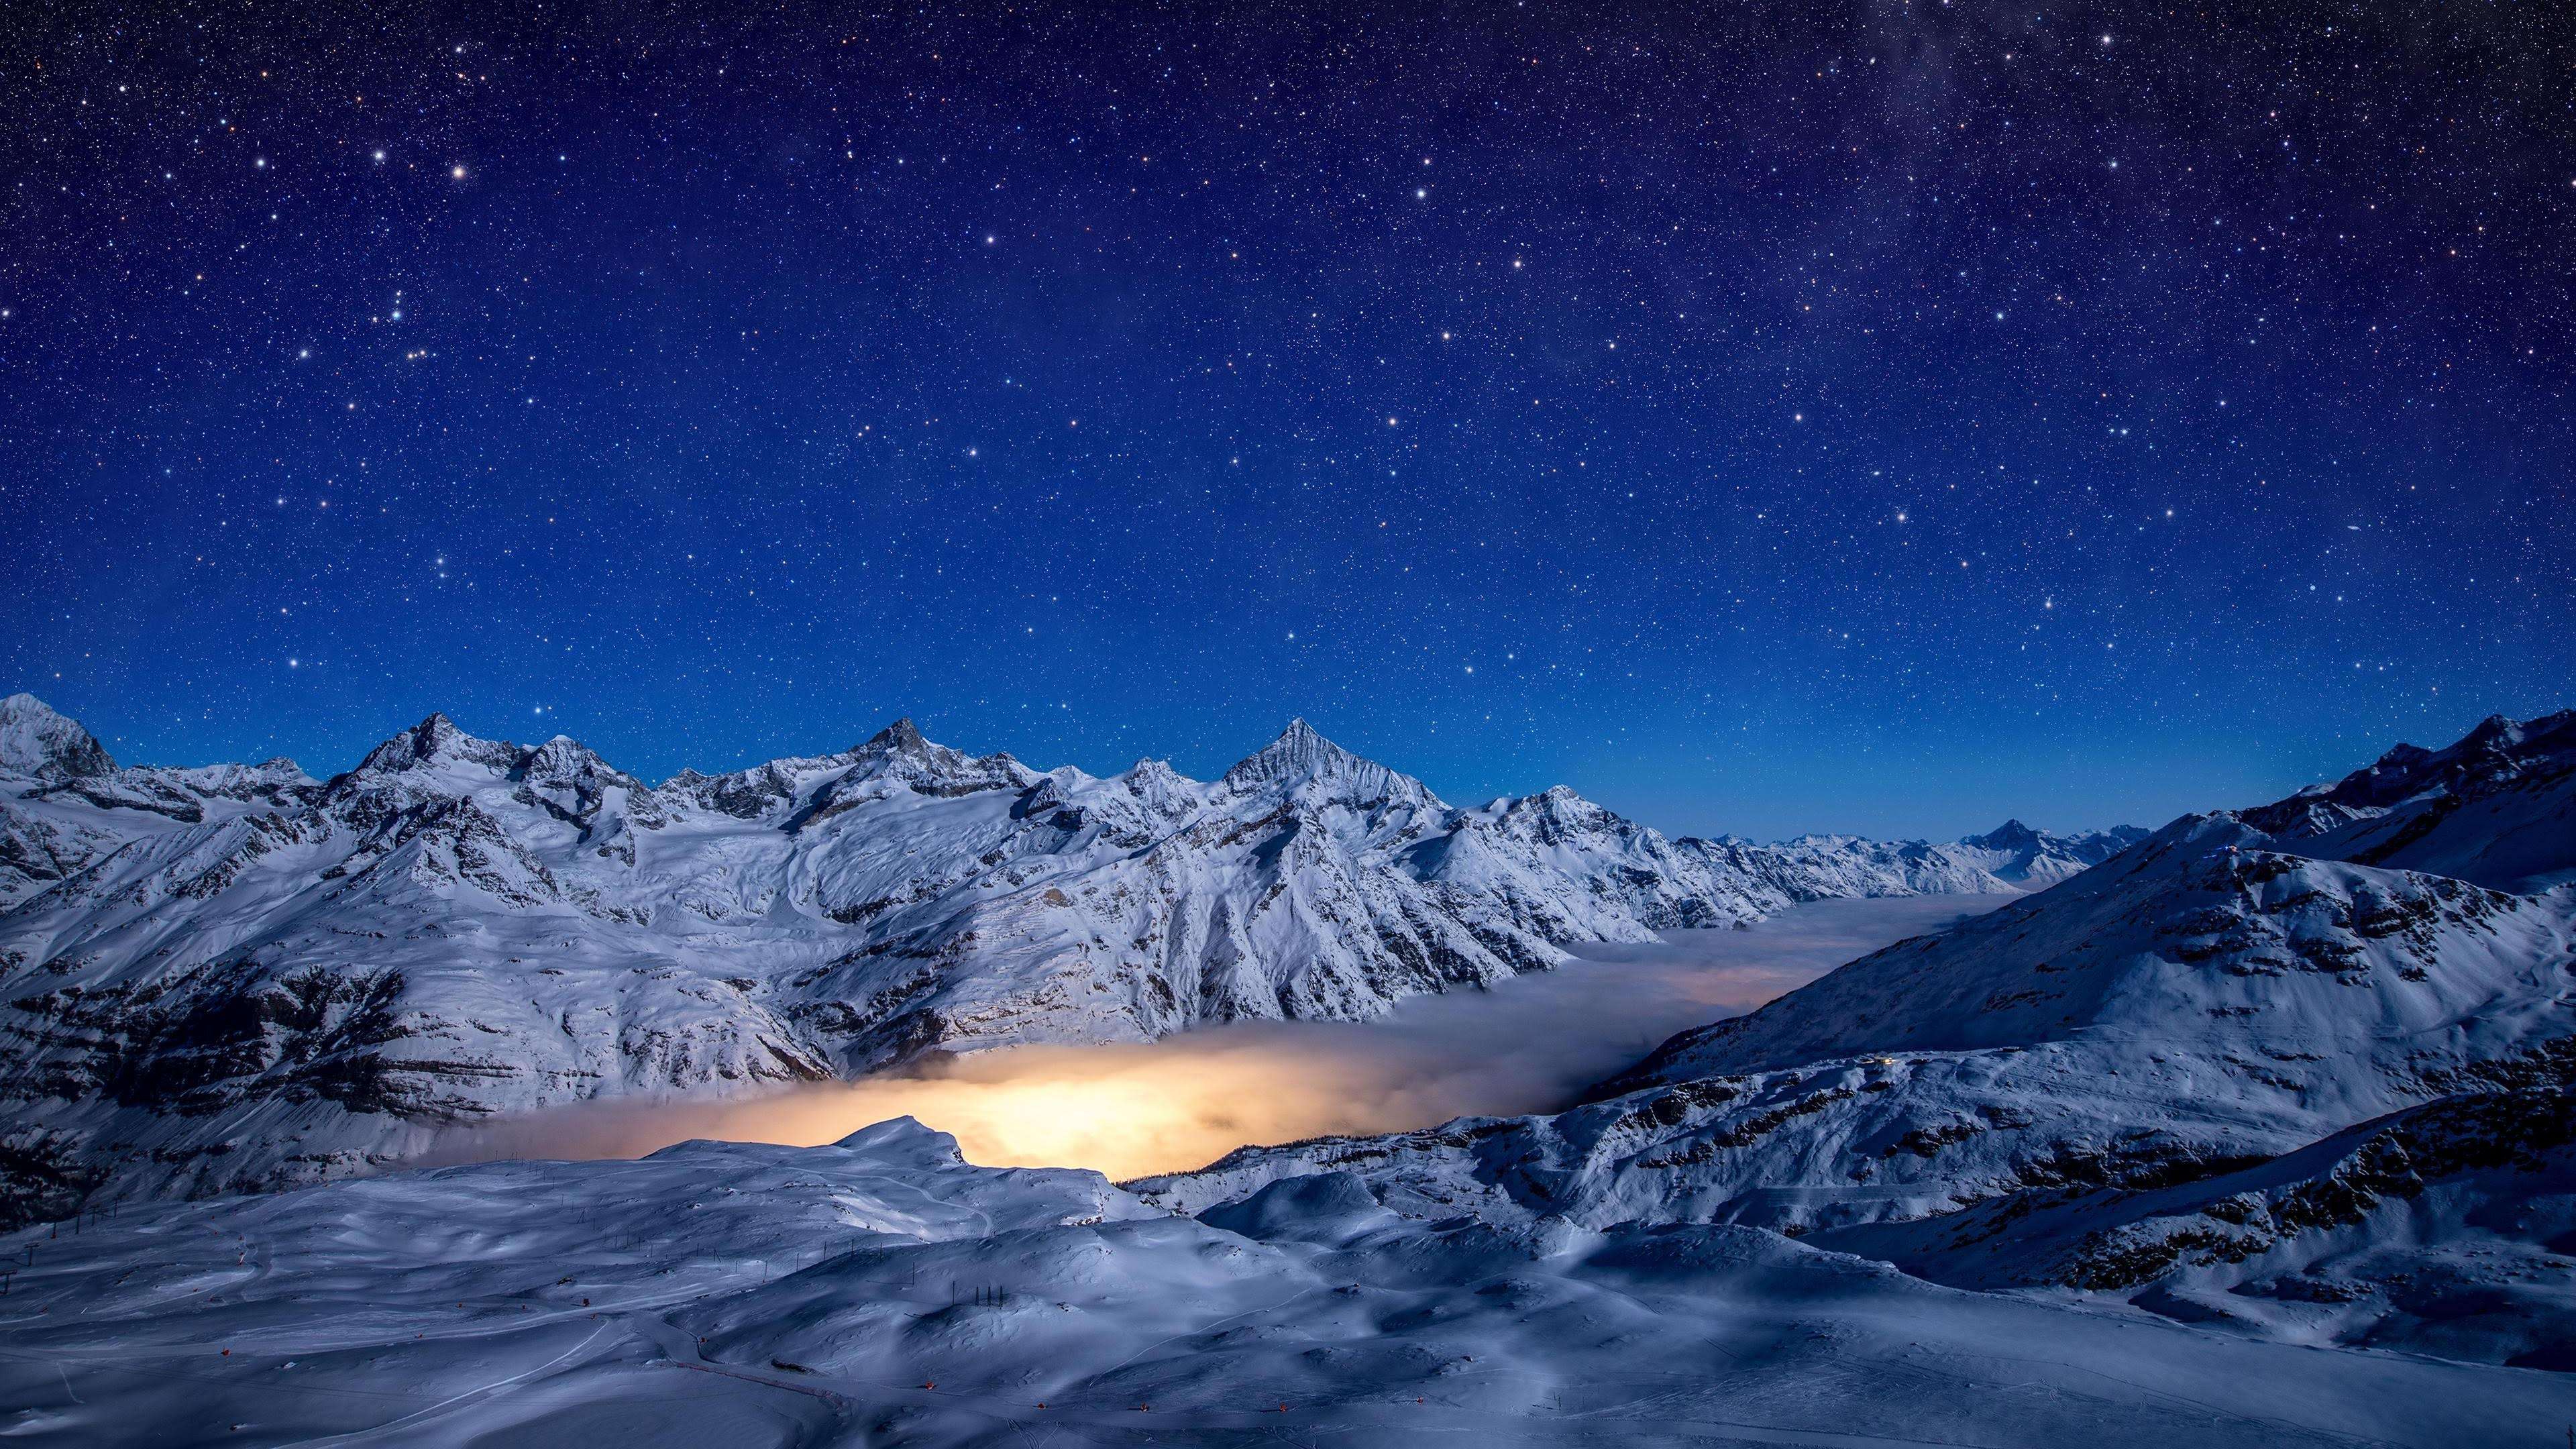 Wallpaper Starry night snow covered mountains